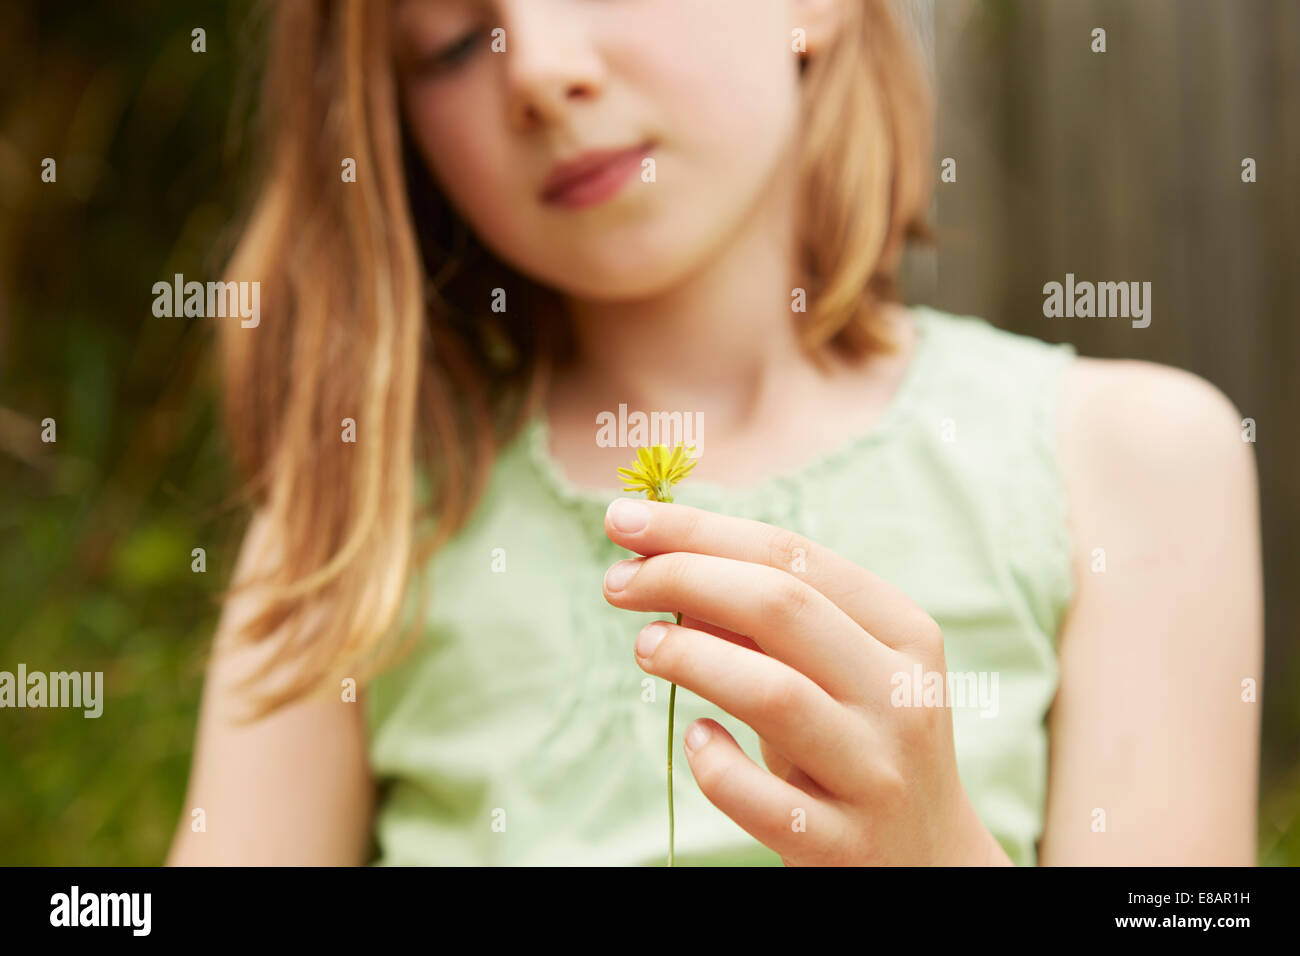 Cropped shot of girl with holding dandelion flower - Stock Image